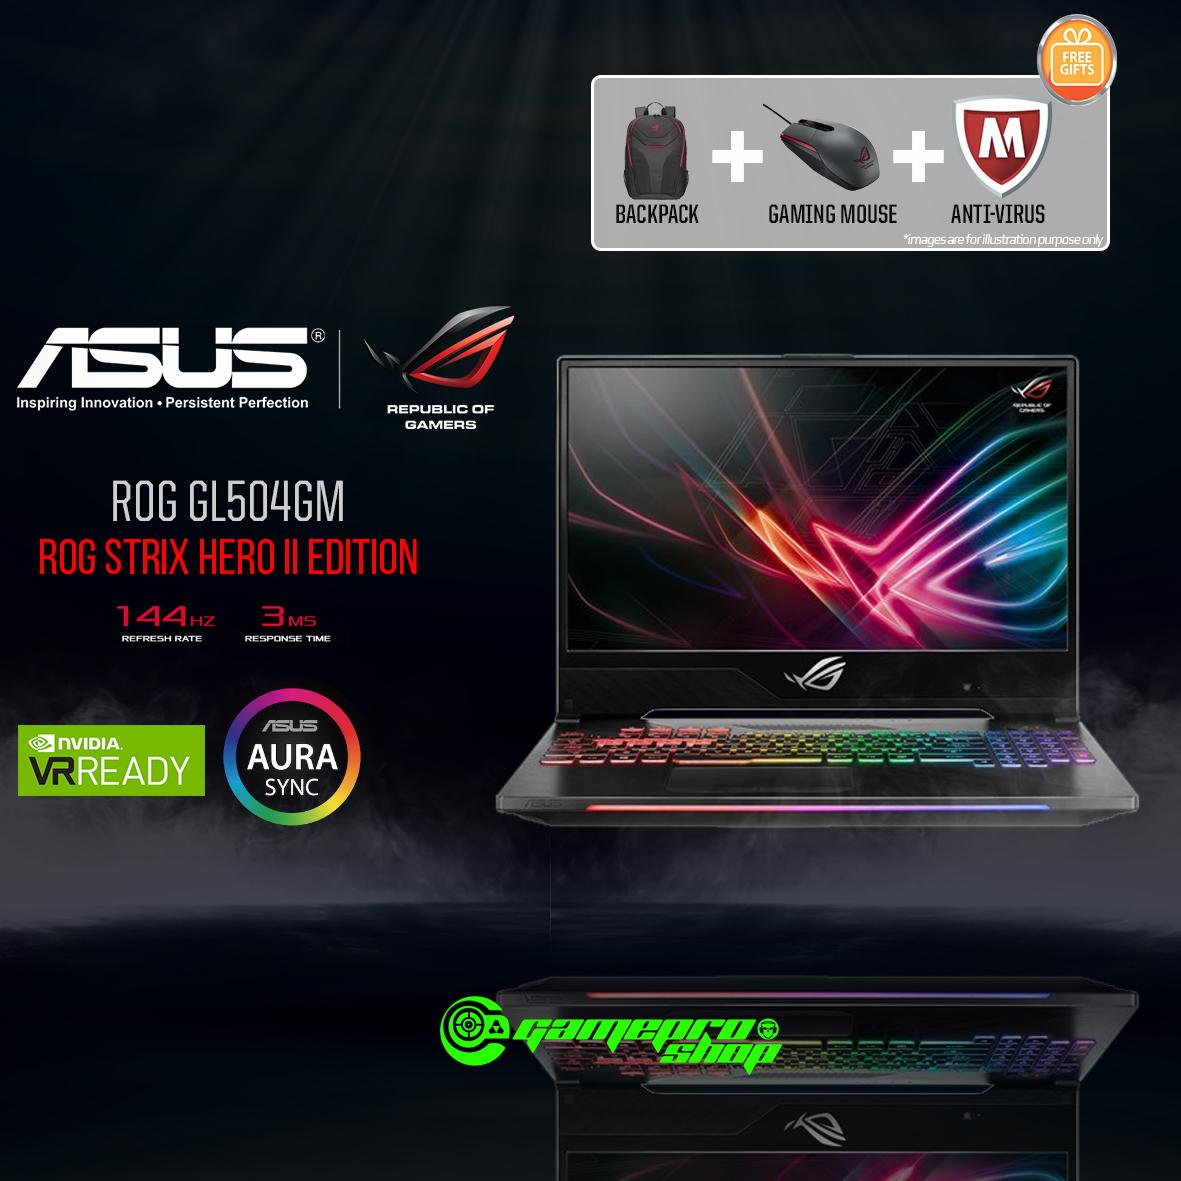 8th Gen ASUS ROG Strix Hero II GL504GM -ES052T (8th-Gen/128GB SSD/GTX 1060 6GB GDDR5) 15.6